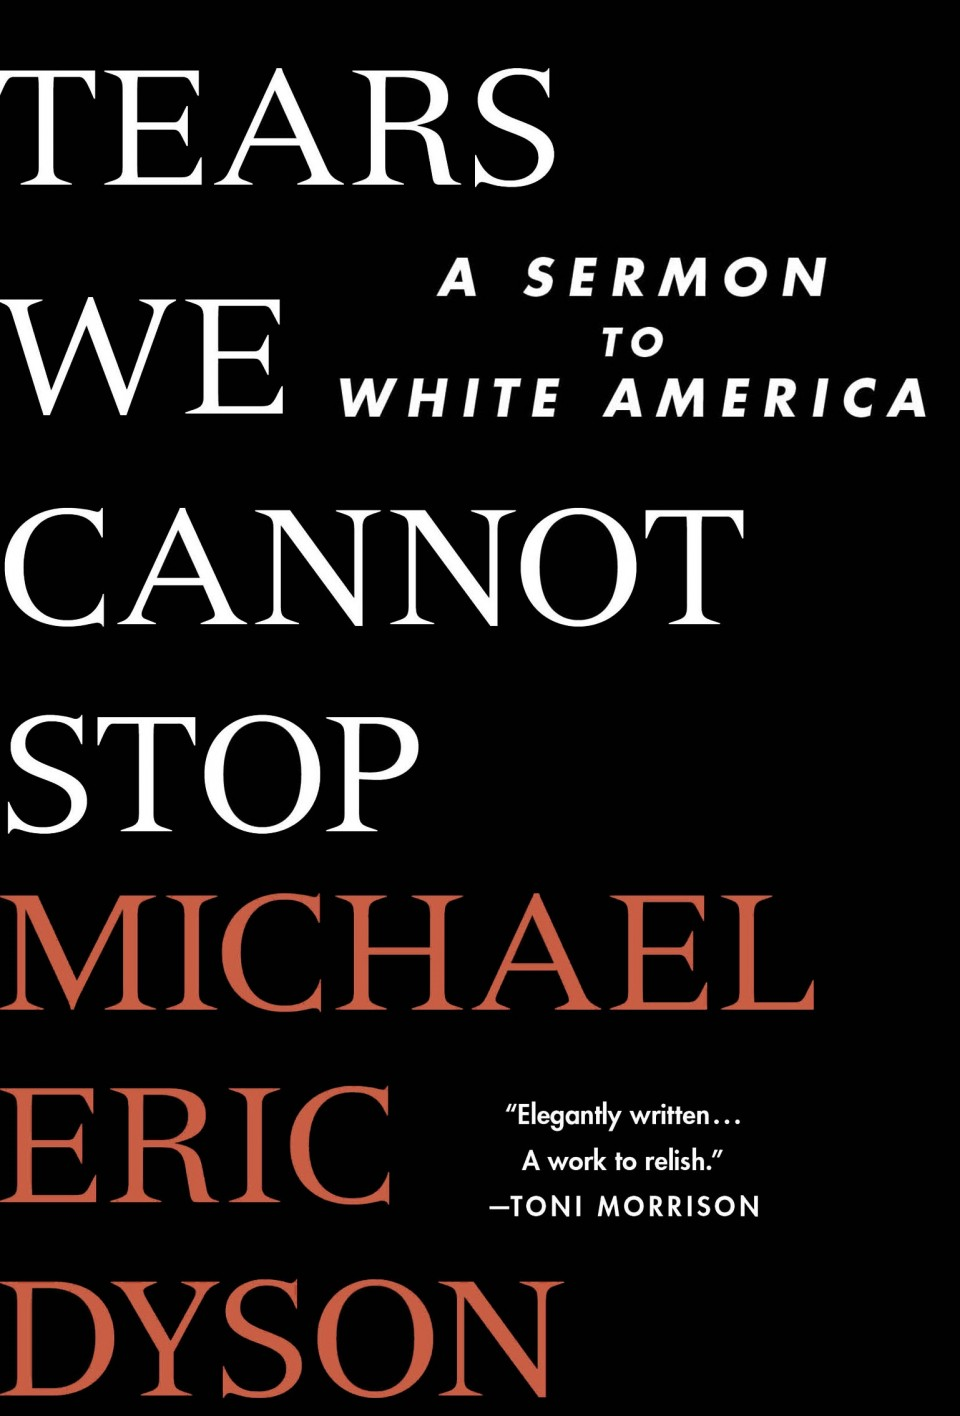 A Reading for African-American History Month